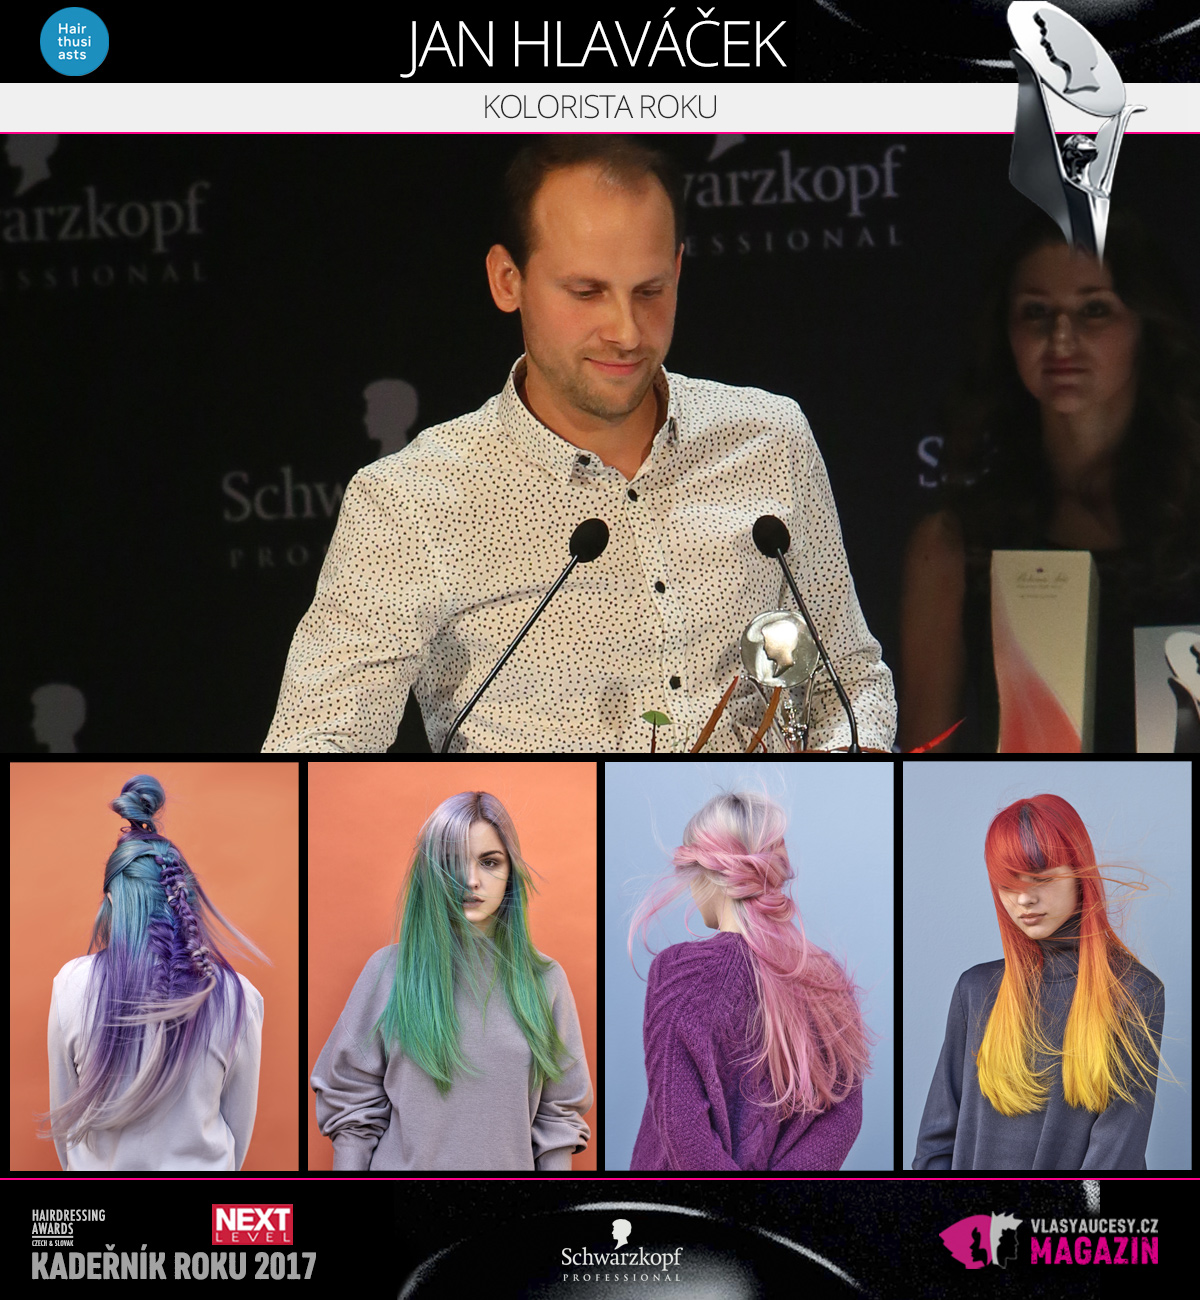 Jan Hlaváček (Hairthusiasts) – Kolorista roku 2017 soutěže Czech and Slovak Hairdressing Awards 2017.